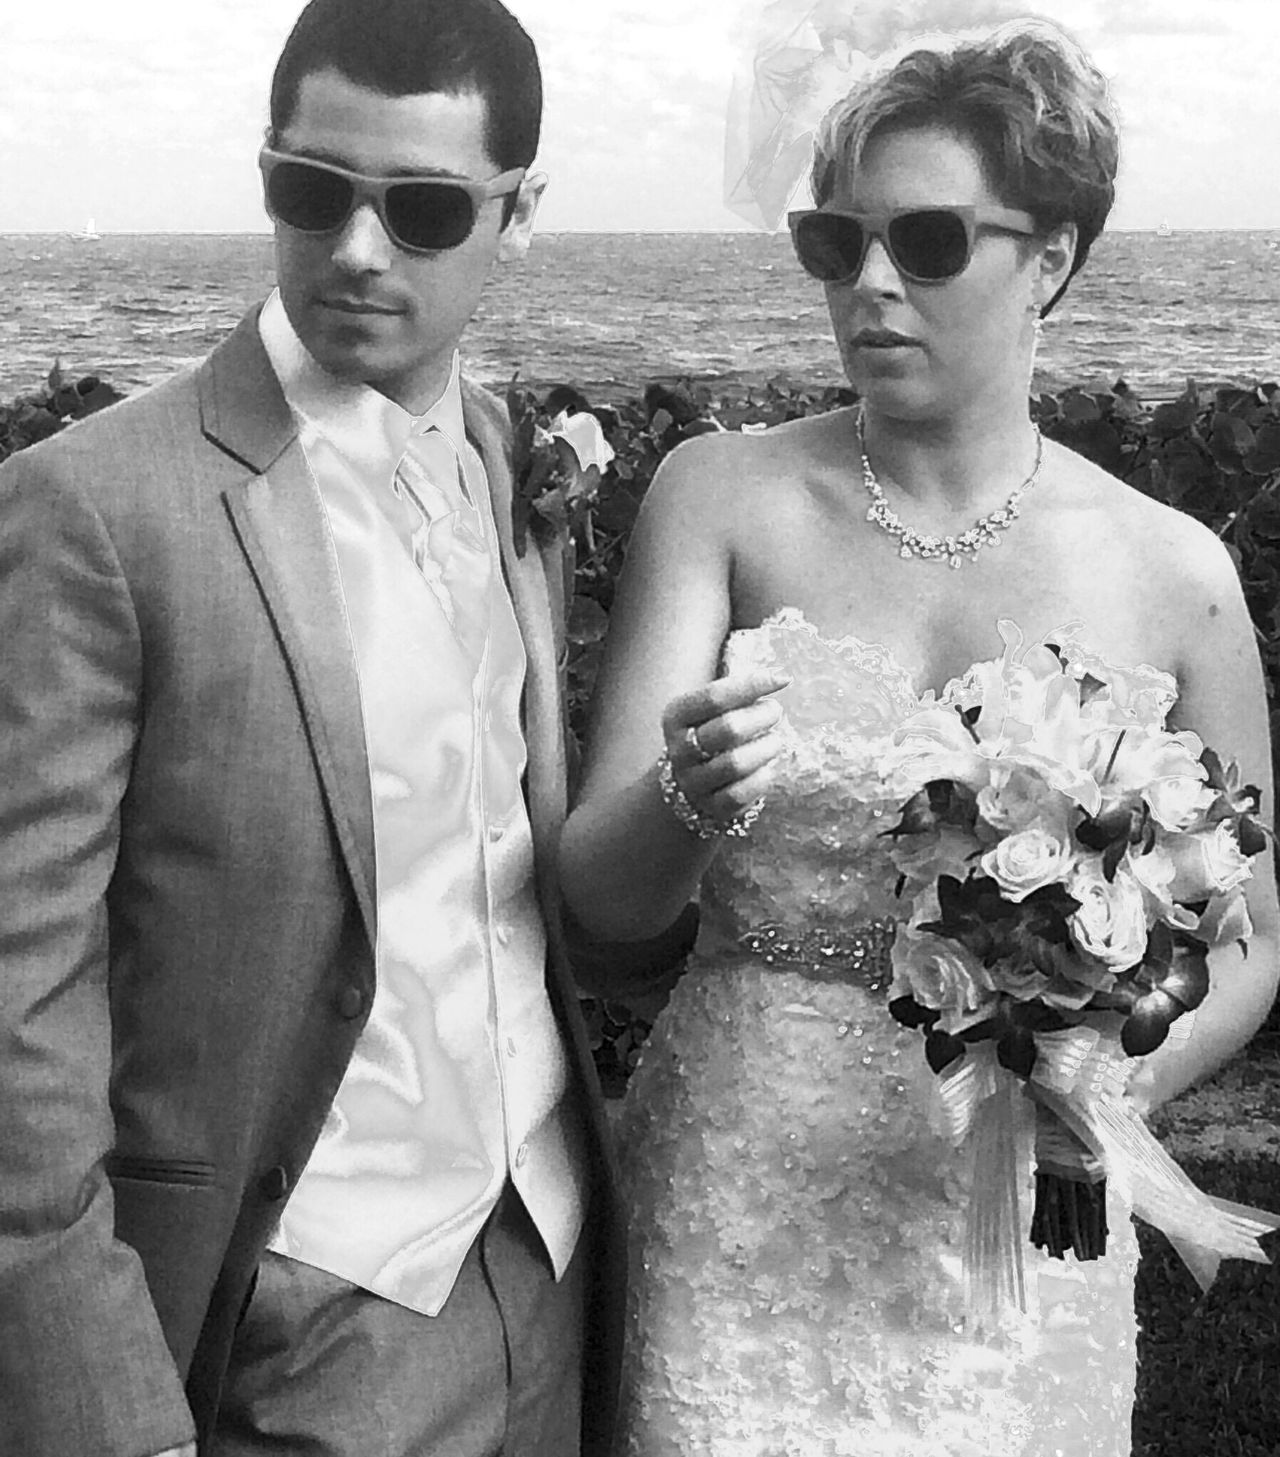 Wedding Shades Bride Groom Marriage  Cool Hip Young Lifestyles Sunglasses Togetherness Beautiful Black And White Tuxedo Wedding Day Wedding Dress Wedding Bouquet Vest Bride And Groom